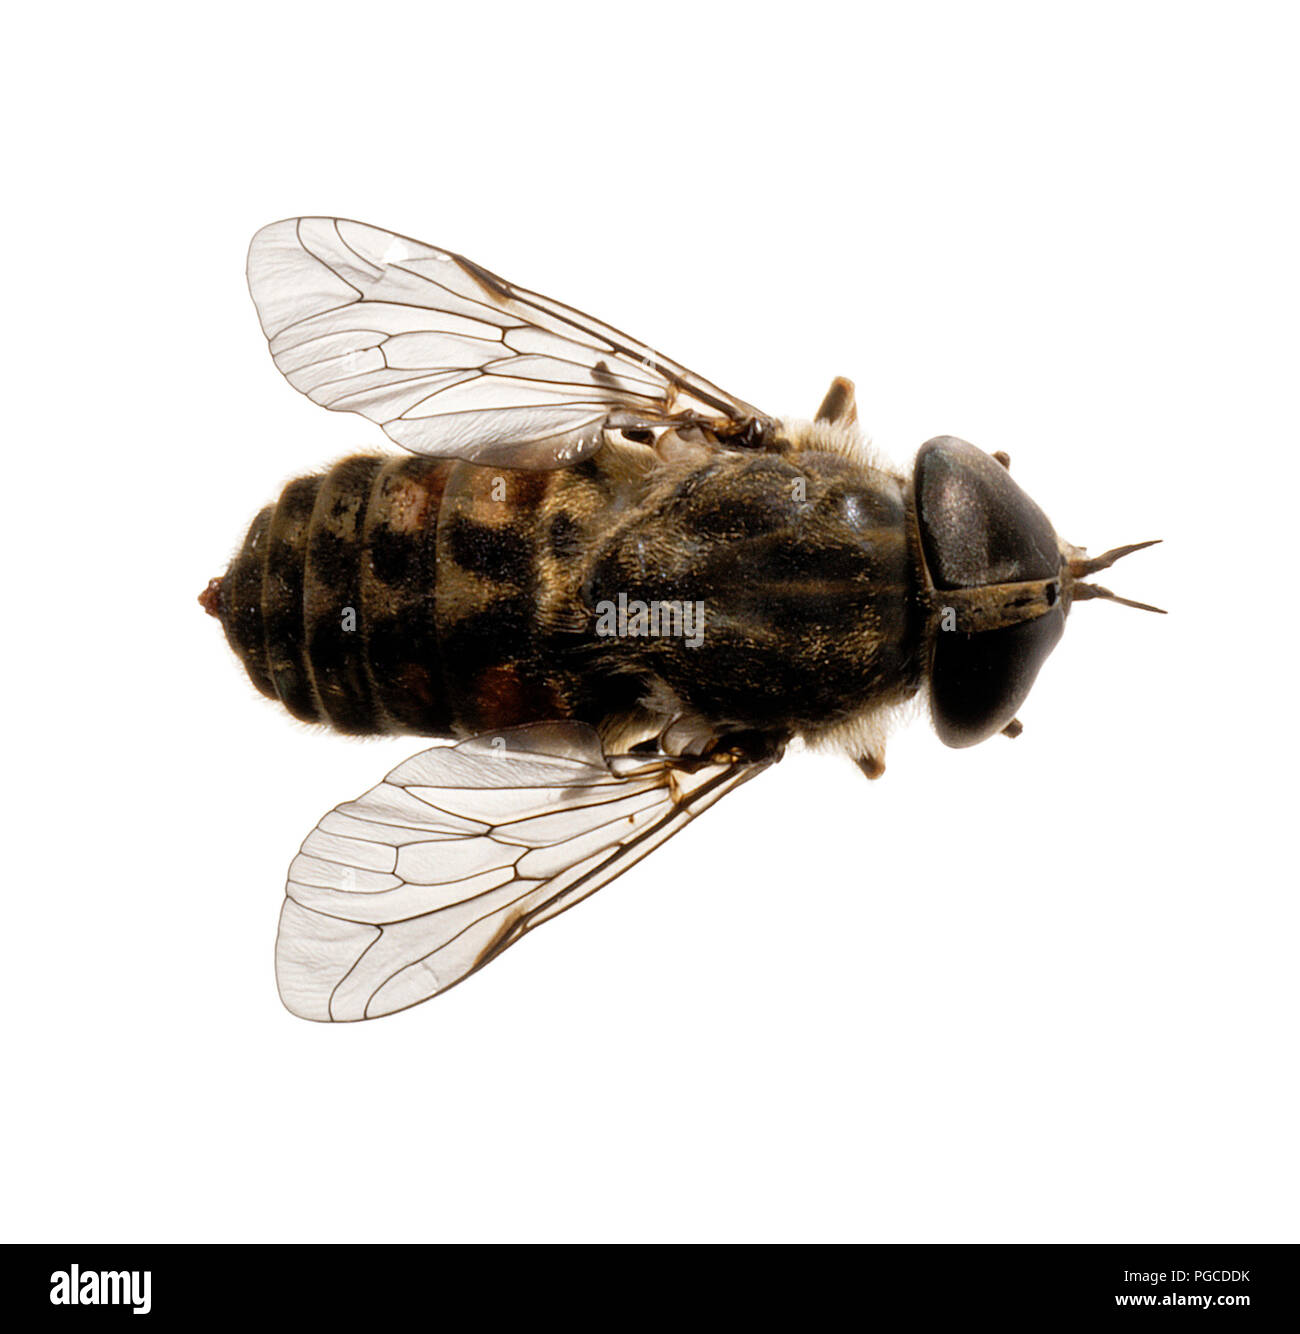 A dead horsefly against a pure white background. Cutout iamge. - Stock Image